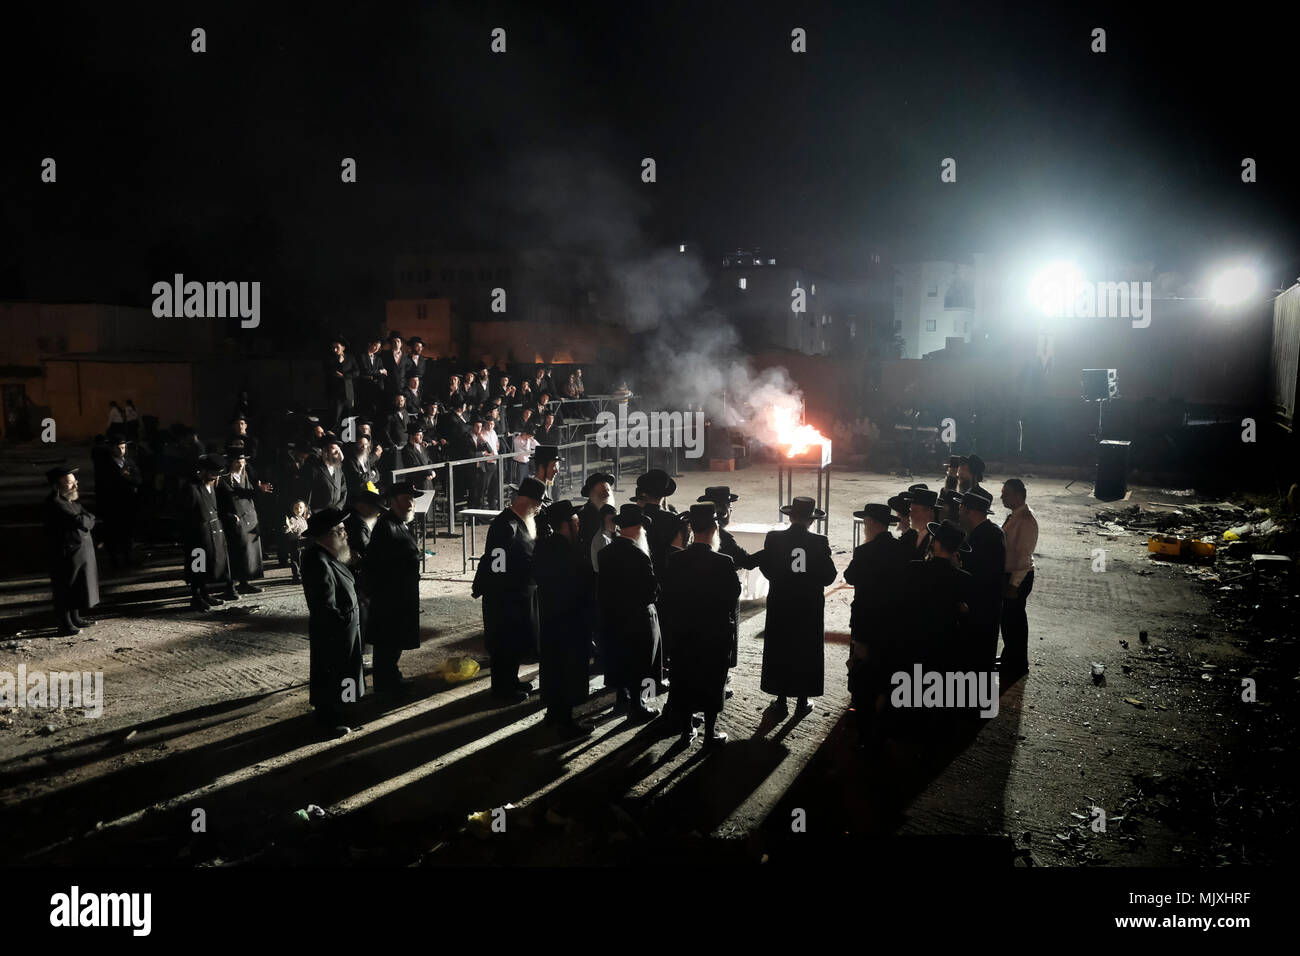 Ultra-Orthodox Jewish men from the Shomrei Emunim Hassidic dynasty dance as they light a giant oil fire in the Geula religious neighborhood during the celebration of Lag BaOmer holiday which marks the celebration, interpreted by some as anniversary of death of Rabbi Shimon bar Yochai, one of Judaism's great sages some 1800 years ago and the day on which he revealed the deepest secrets of kabbalah a landmark text of Jewish mysticism - Stock Image